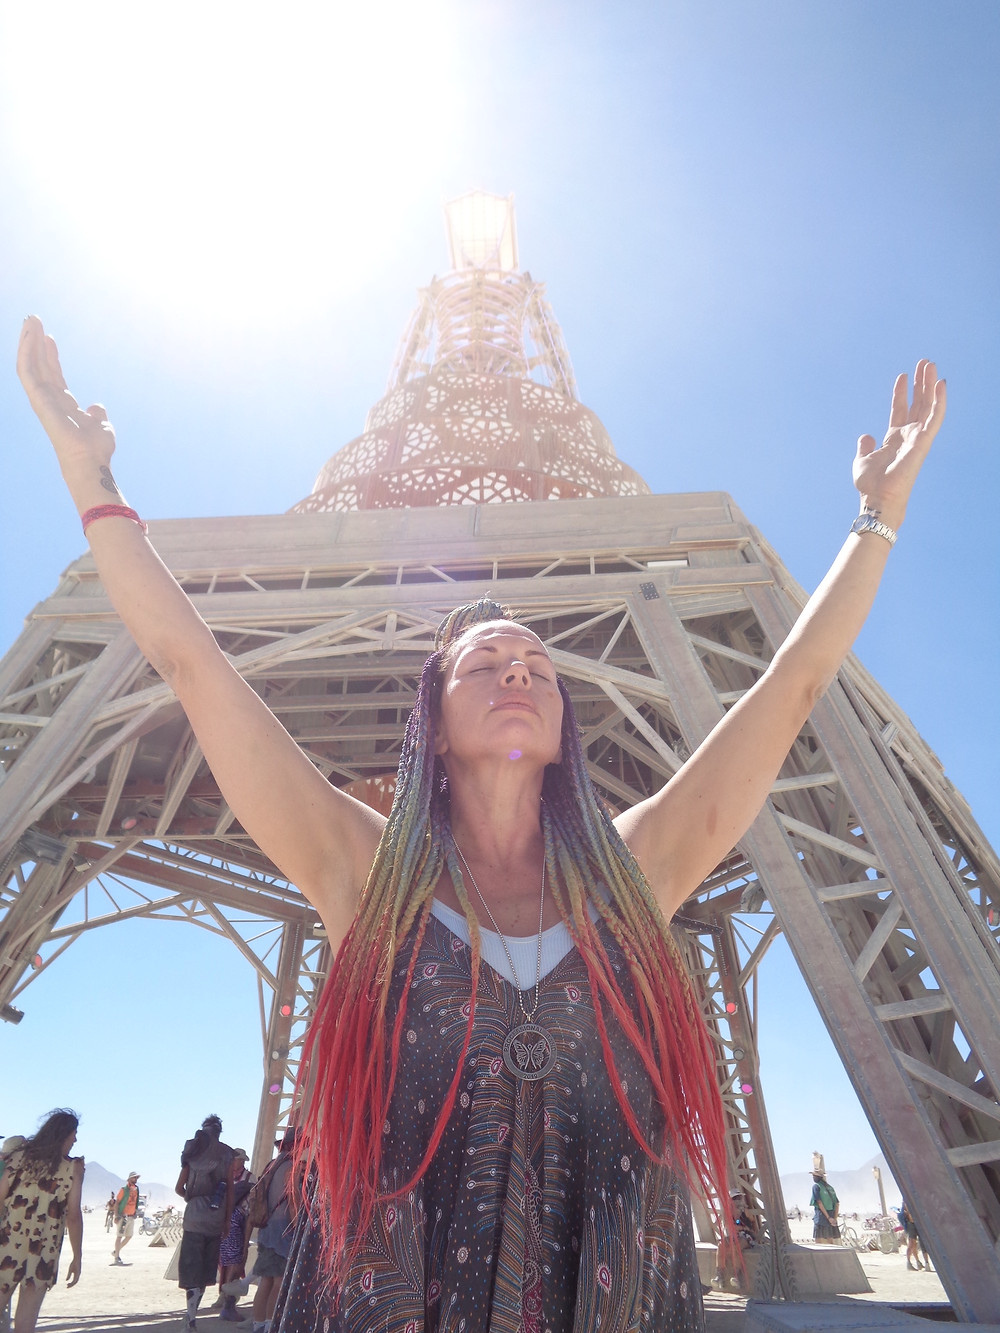 Woman raises hand above her head on sunny day at Burning Man in Black Rock City.